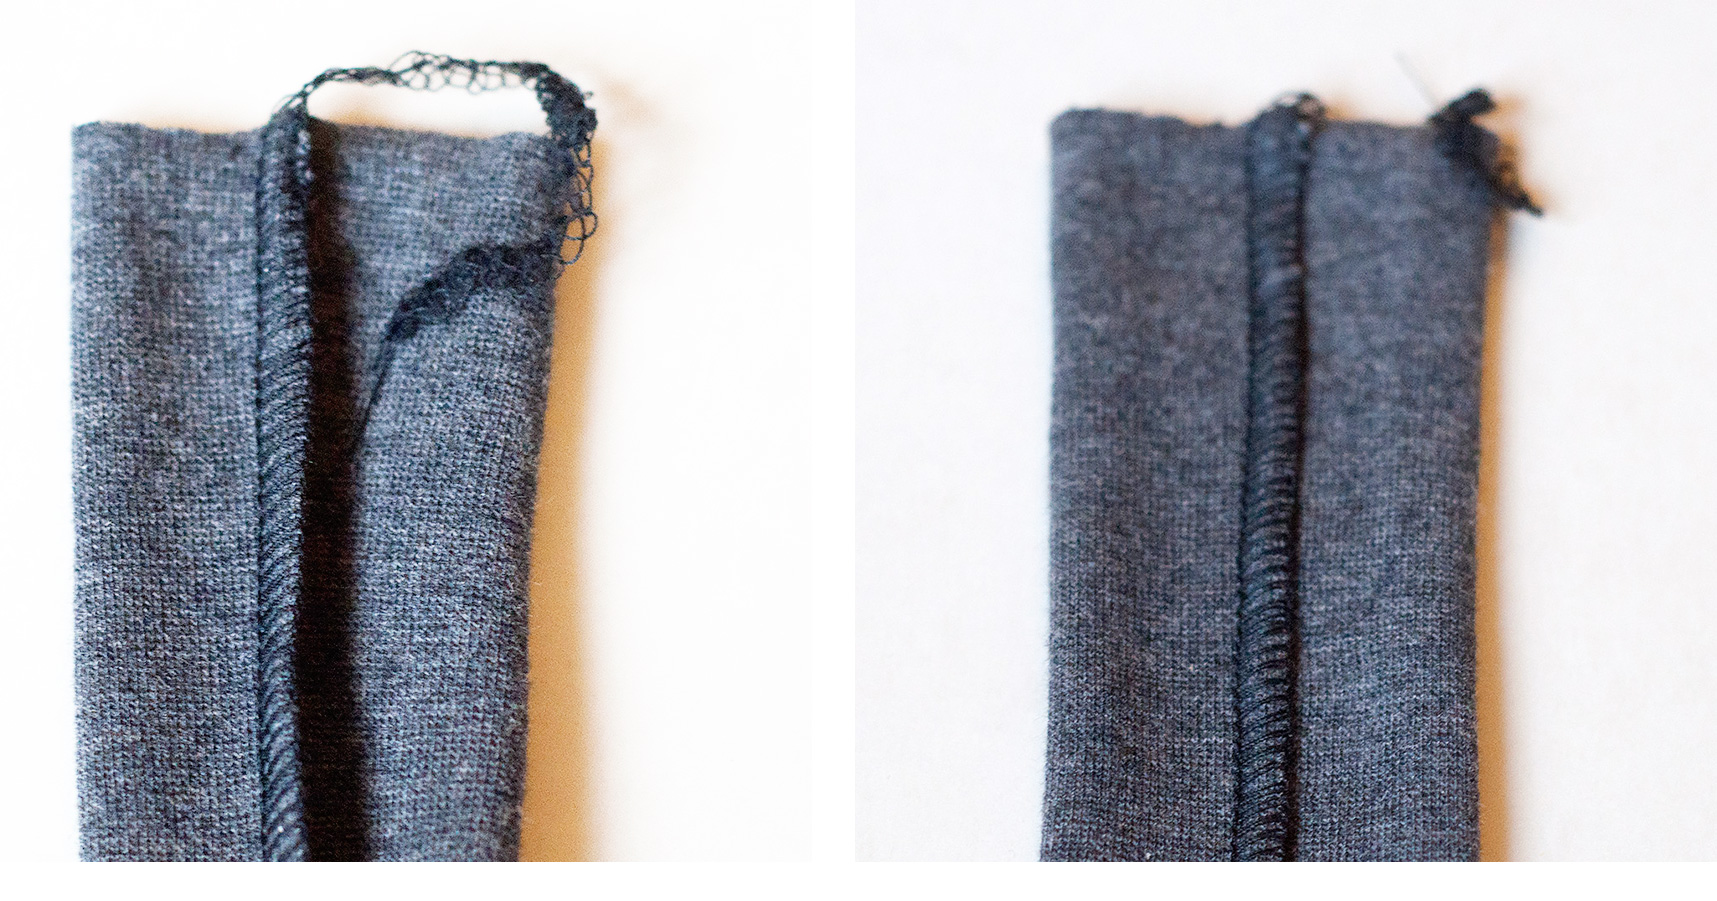 How to perfect the 3-thread flatlock seam